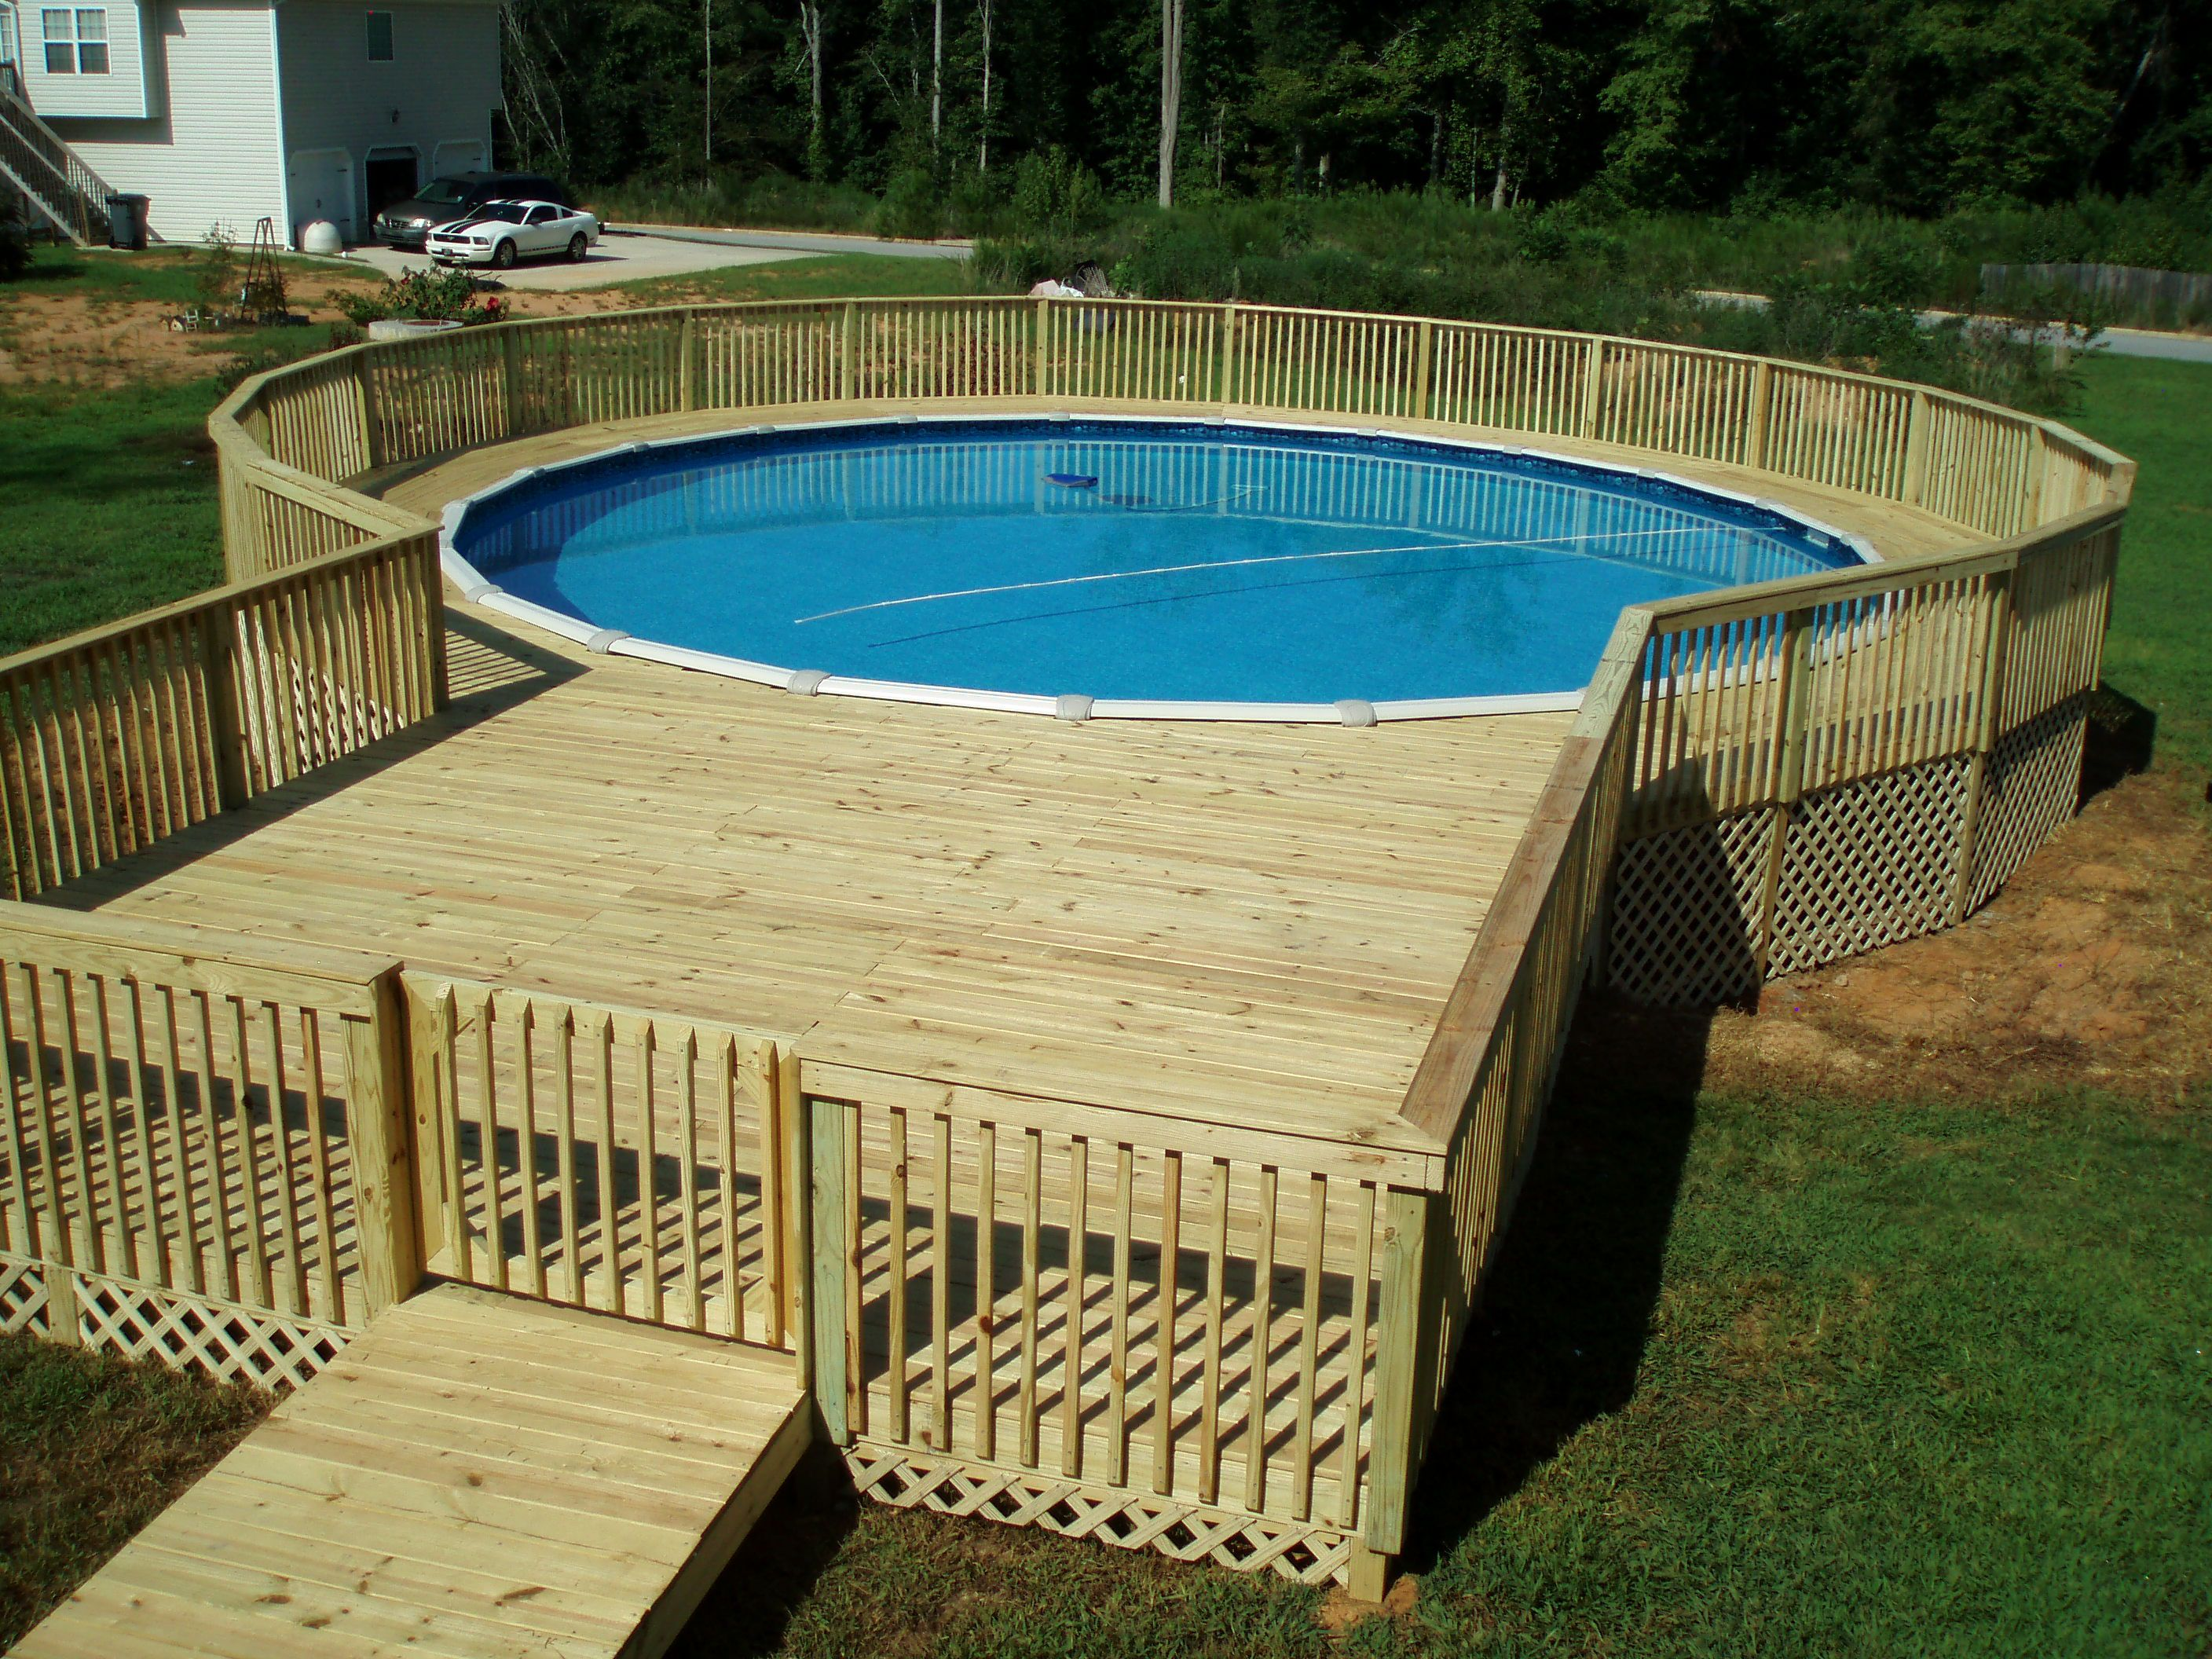 Pool deck ideas made from concrete midcityeast for Pool deck ideas made from concrete